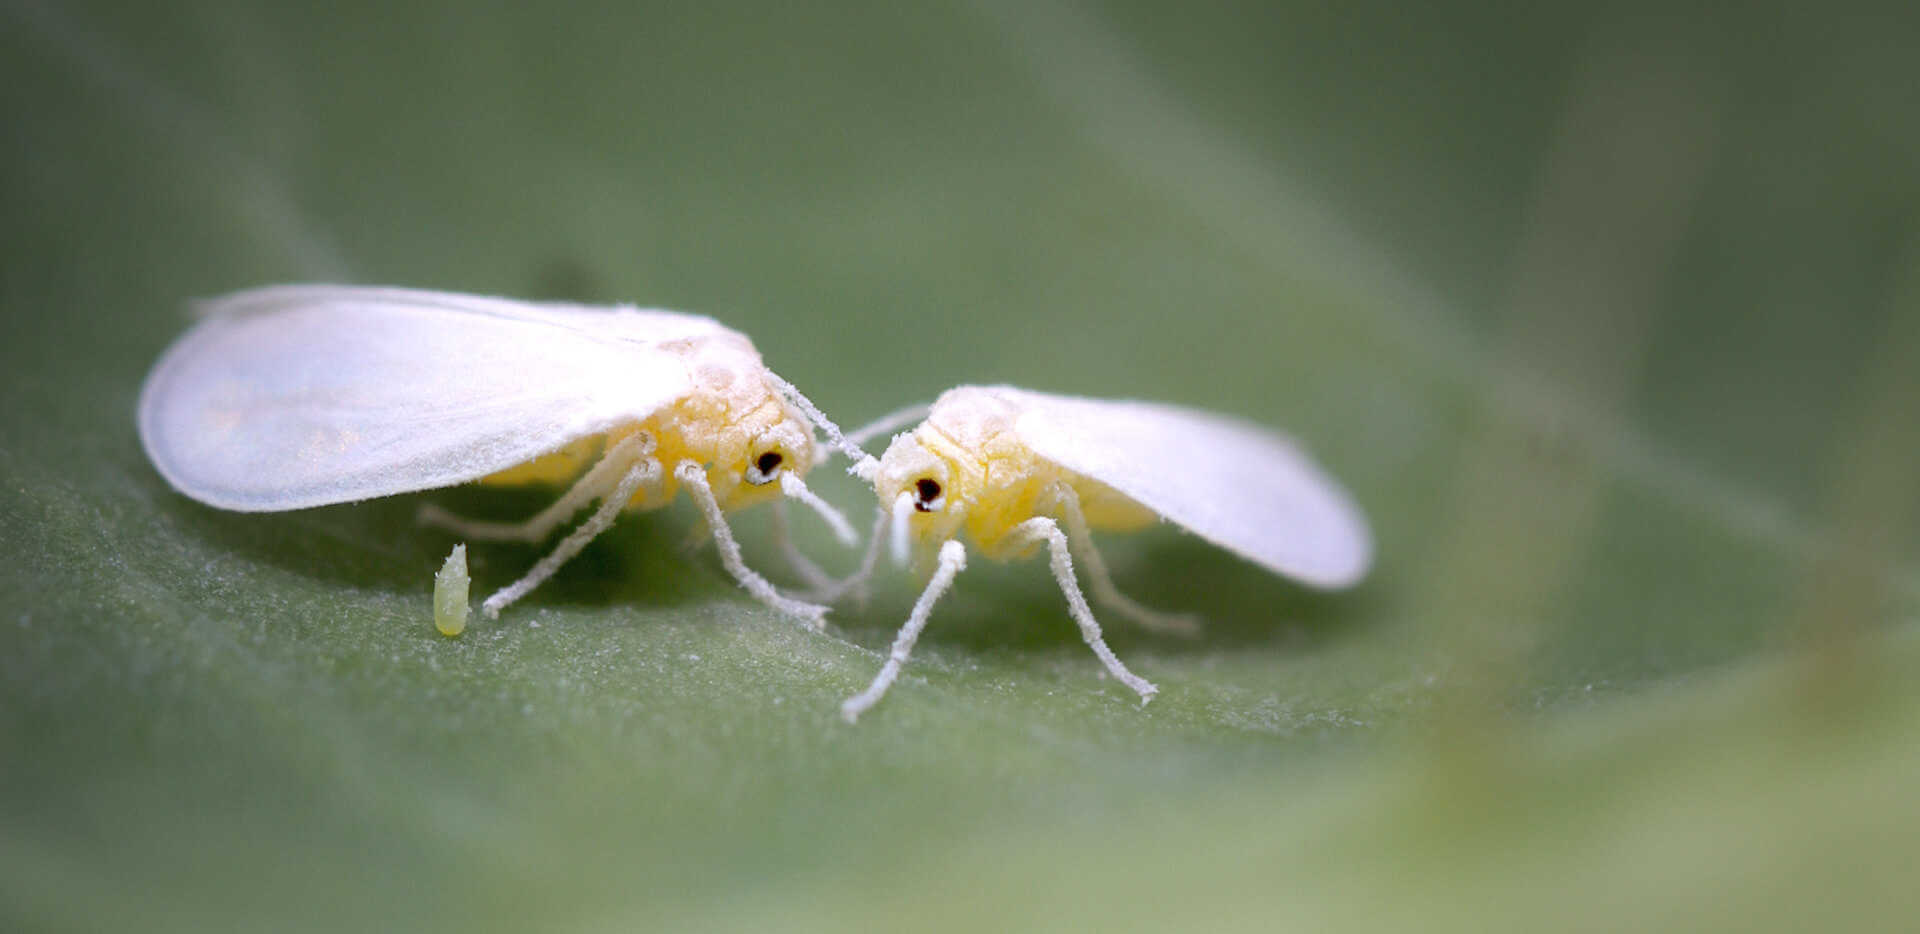 Two whiteflies resting on a leaf.